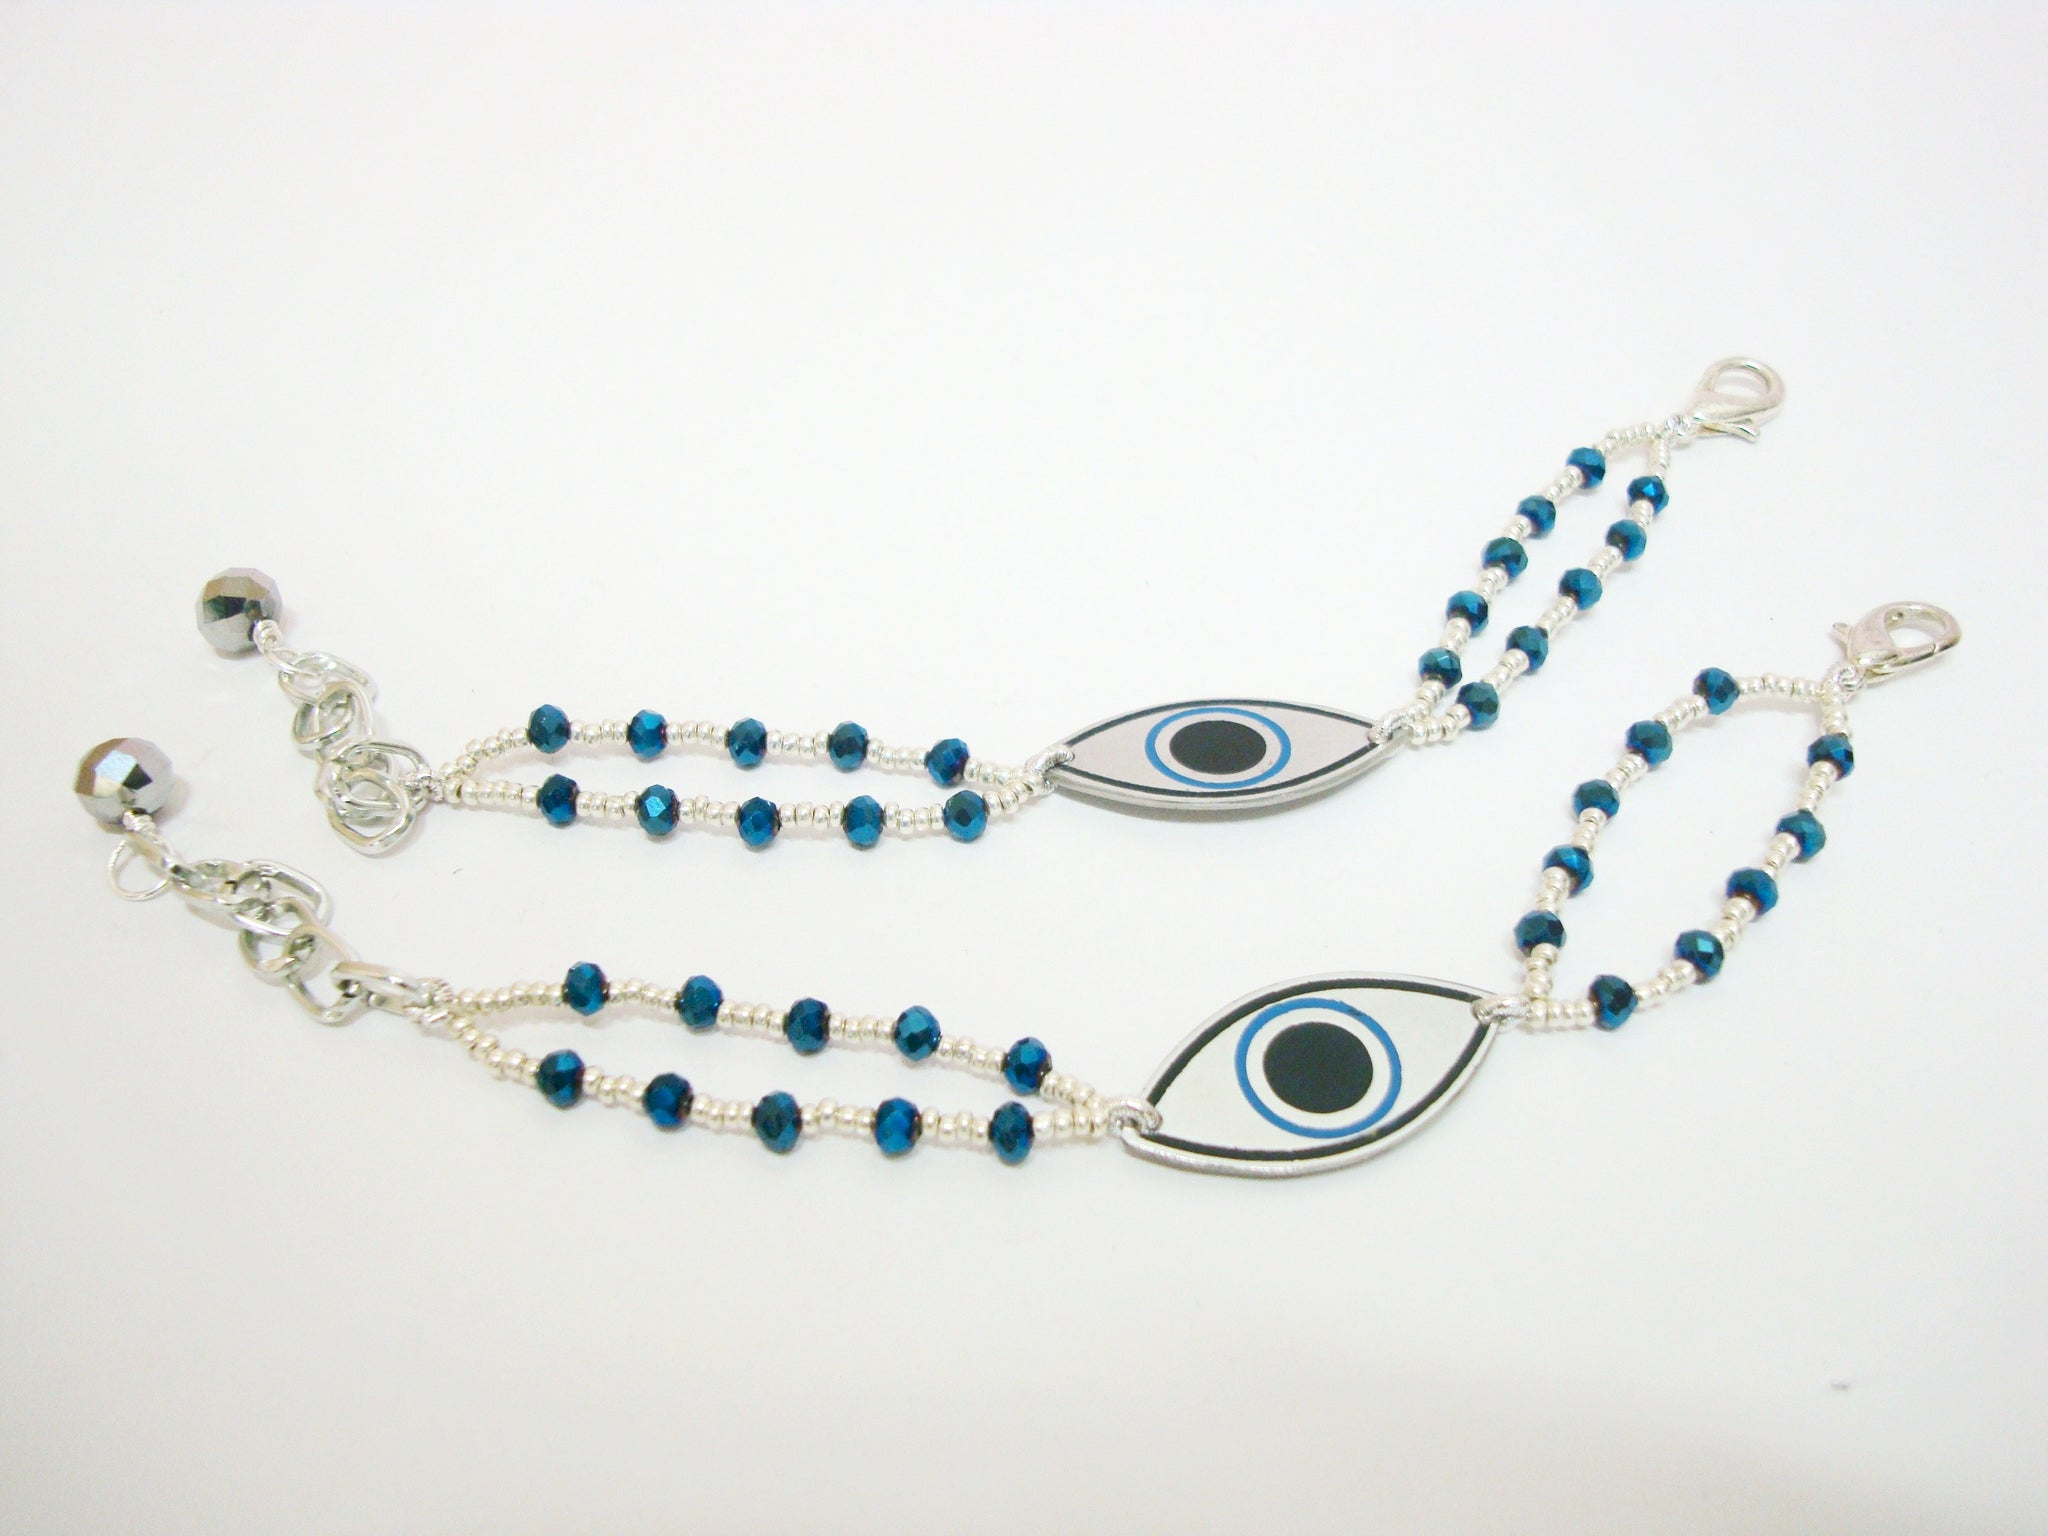 Metallic Blue and Silver Evil Eye Bracelet